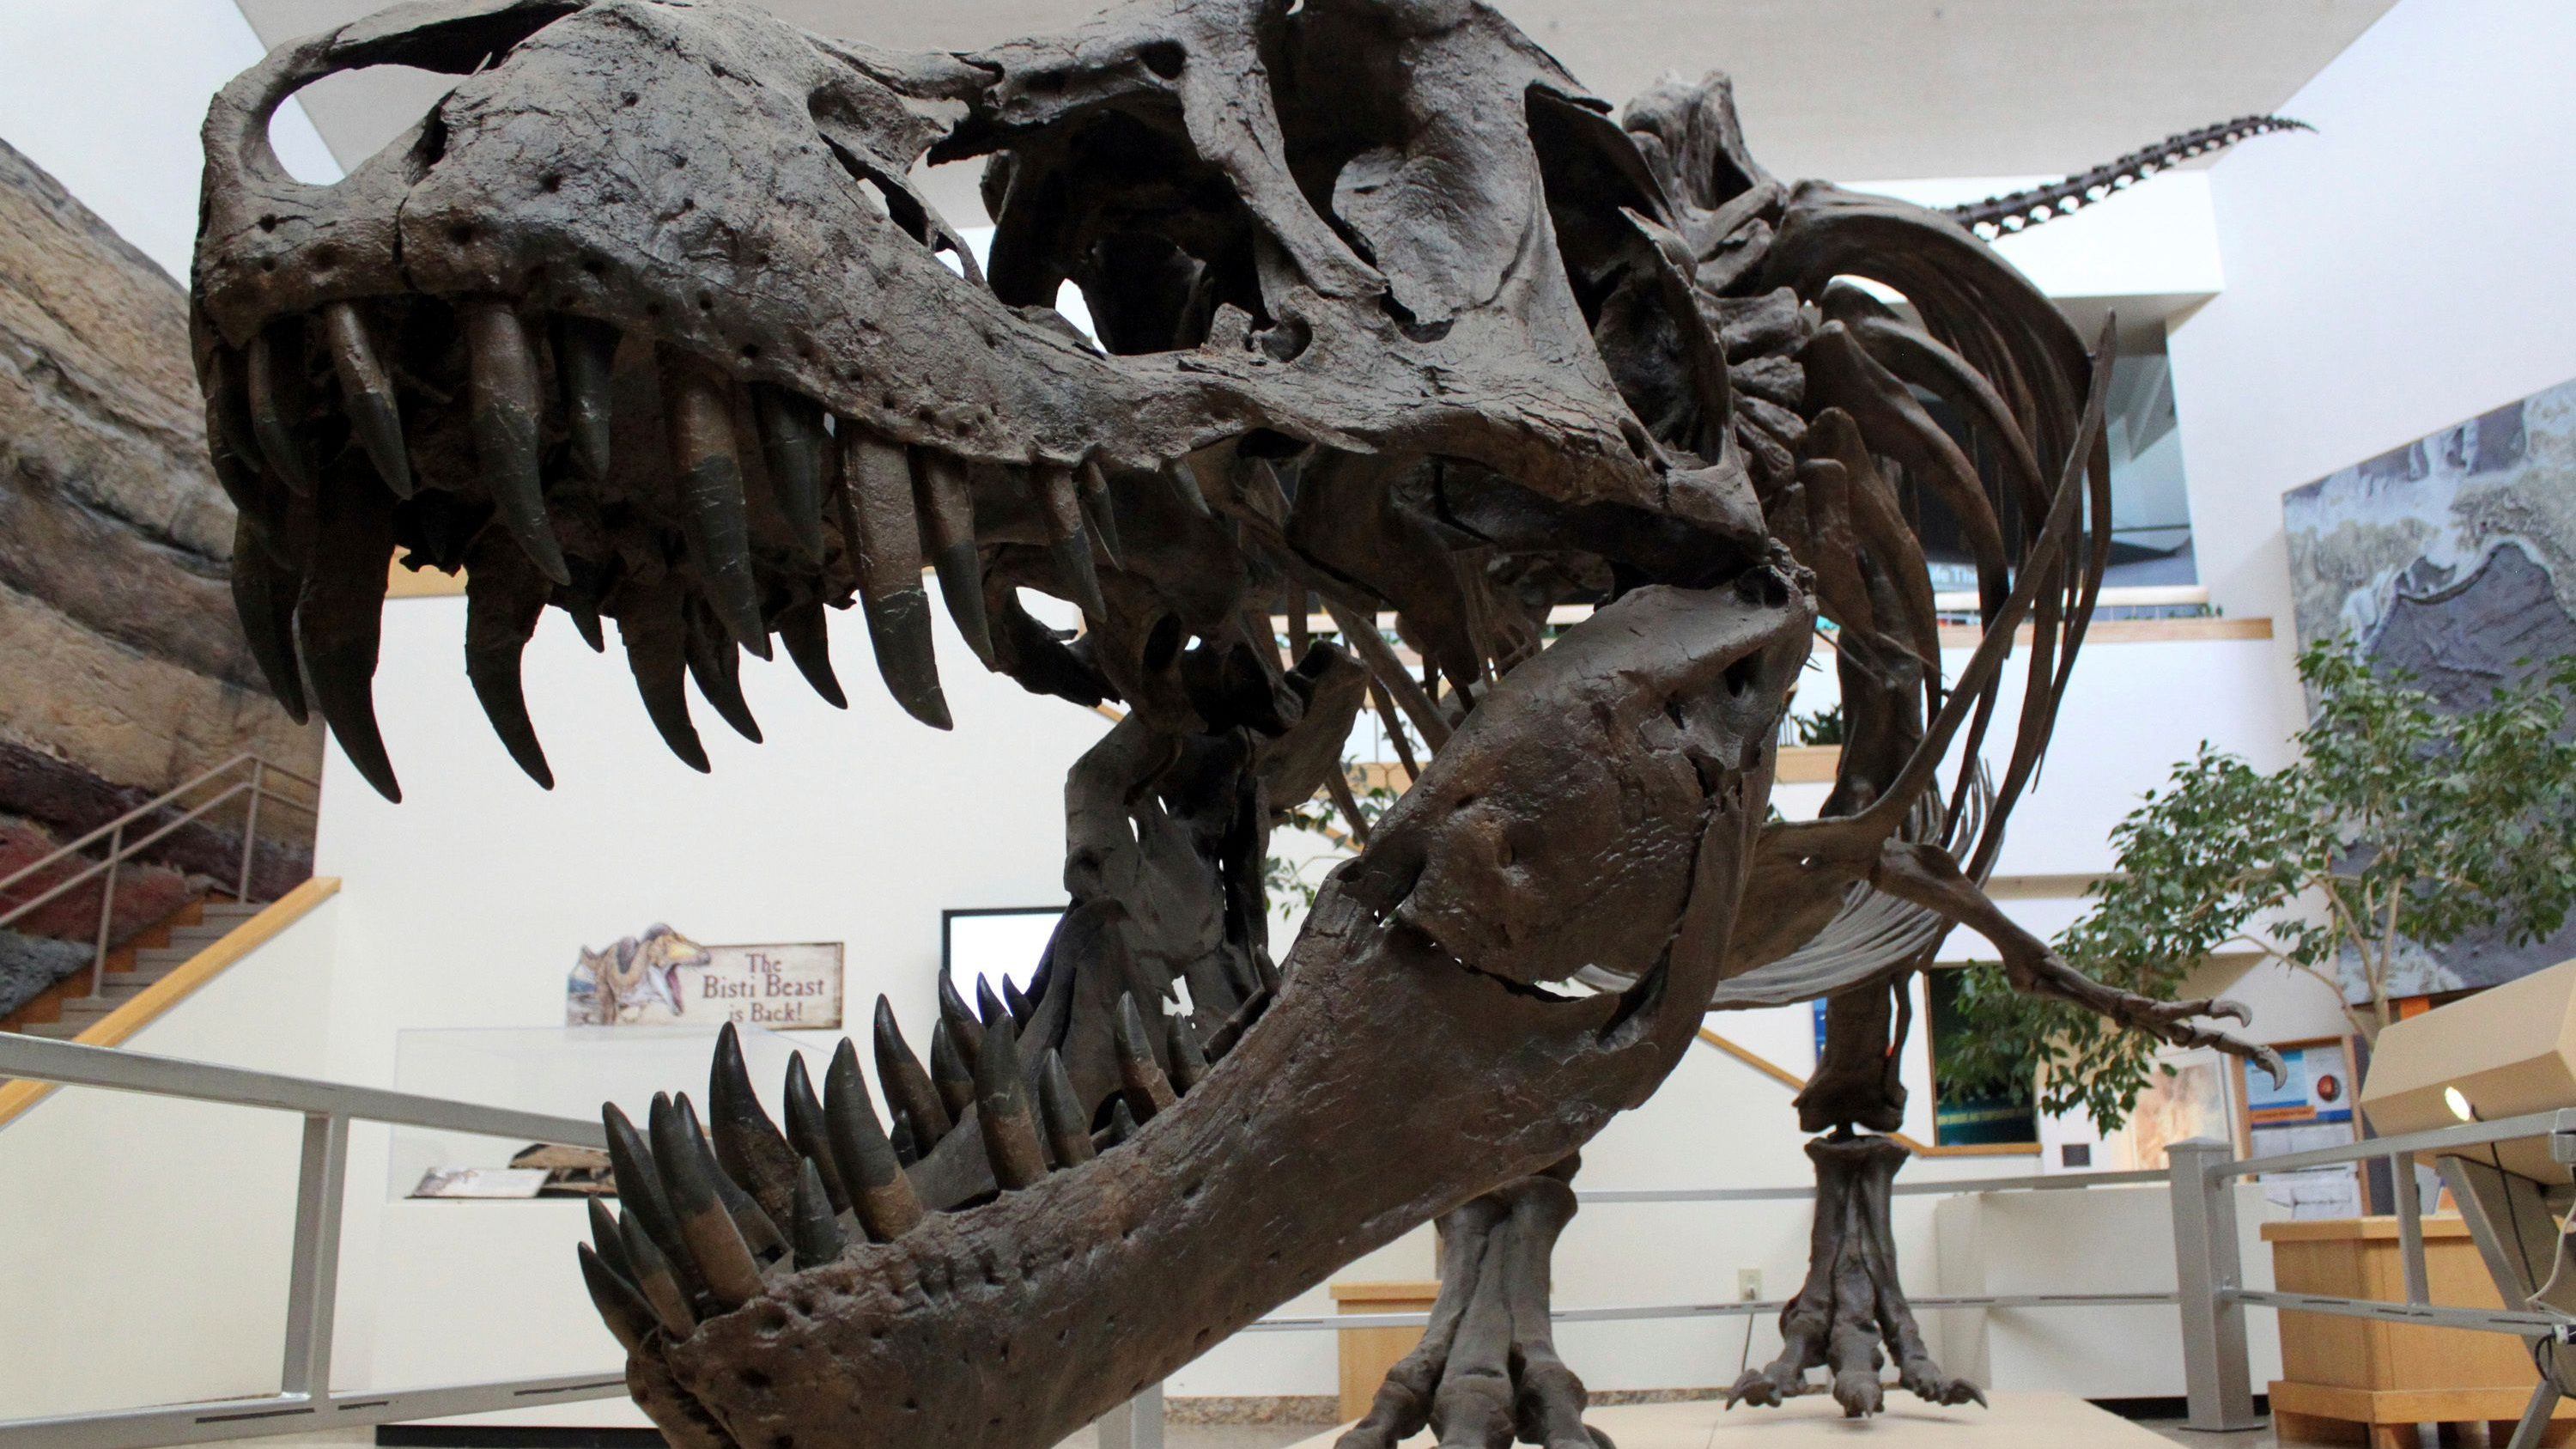 A model of a monstrous, bone-crushing Tyrannosaurus rex sits on display in the main room of the New Mexico Museum of Natural History and Science in Albuquerque, N.M., on Tuesday, Aug. 15, 2017. Museum curator of paleontology Thomas Williamson discovered the fossil remains of a T. rex relative in northwestern New Mexico in 1996 and worked with researchers at Los Alamos National Laboratory last fall to scan the skull in hopes of gleaning new information about the evolution of the predators.